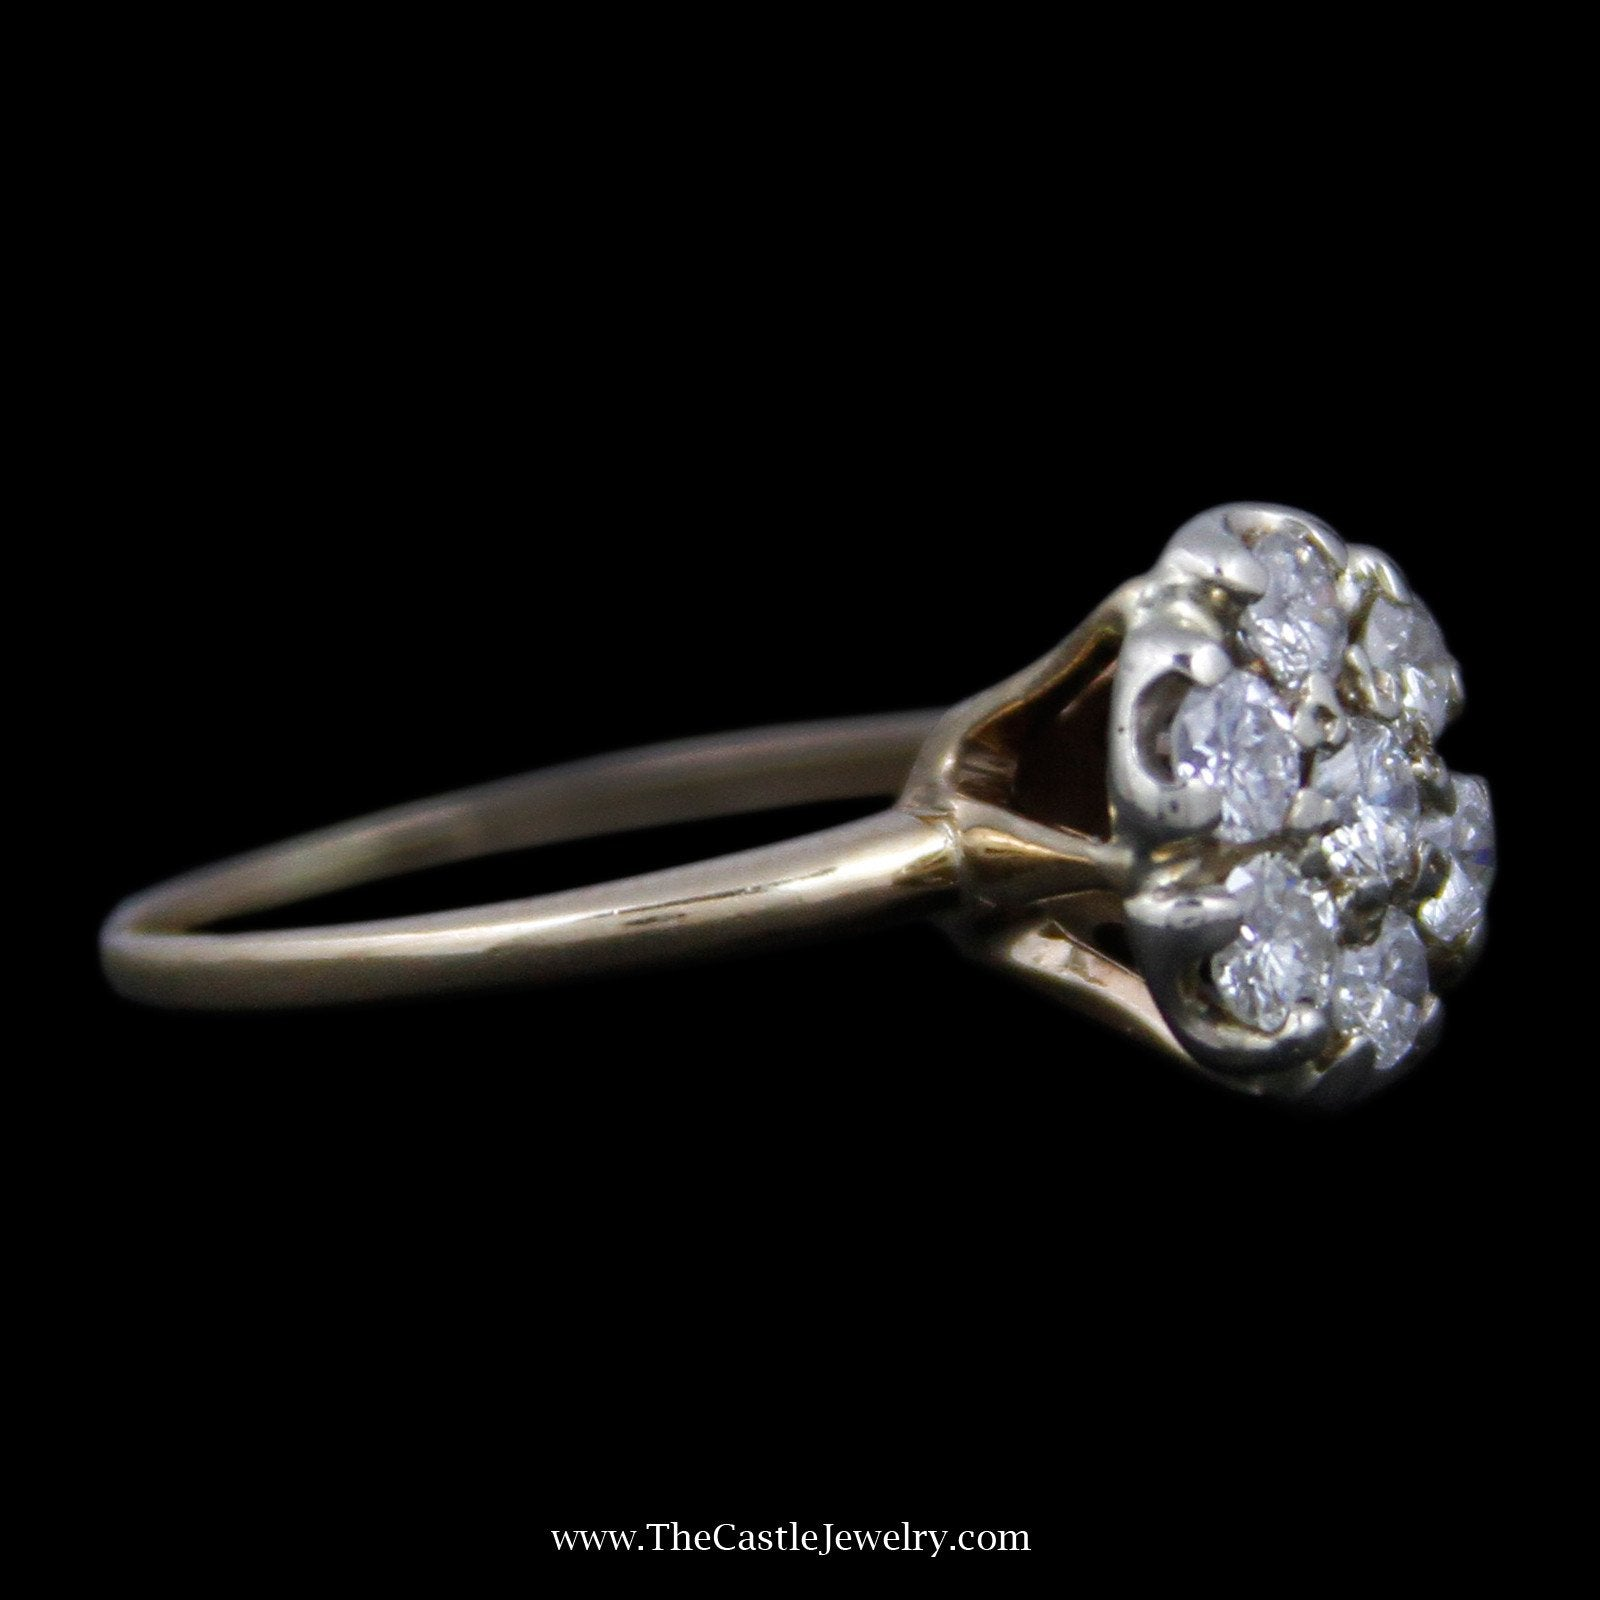 Stunning Round Diamond Cluster Ring w/ 7 Round Brilliant Cut Diamonds in 14k Yellow Gold-2